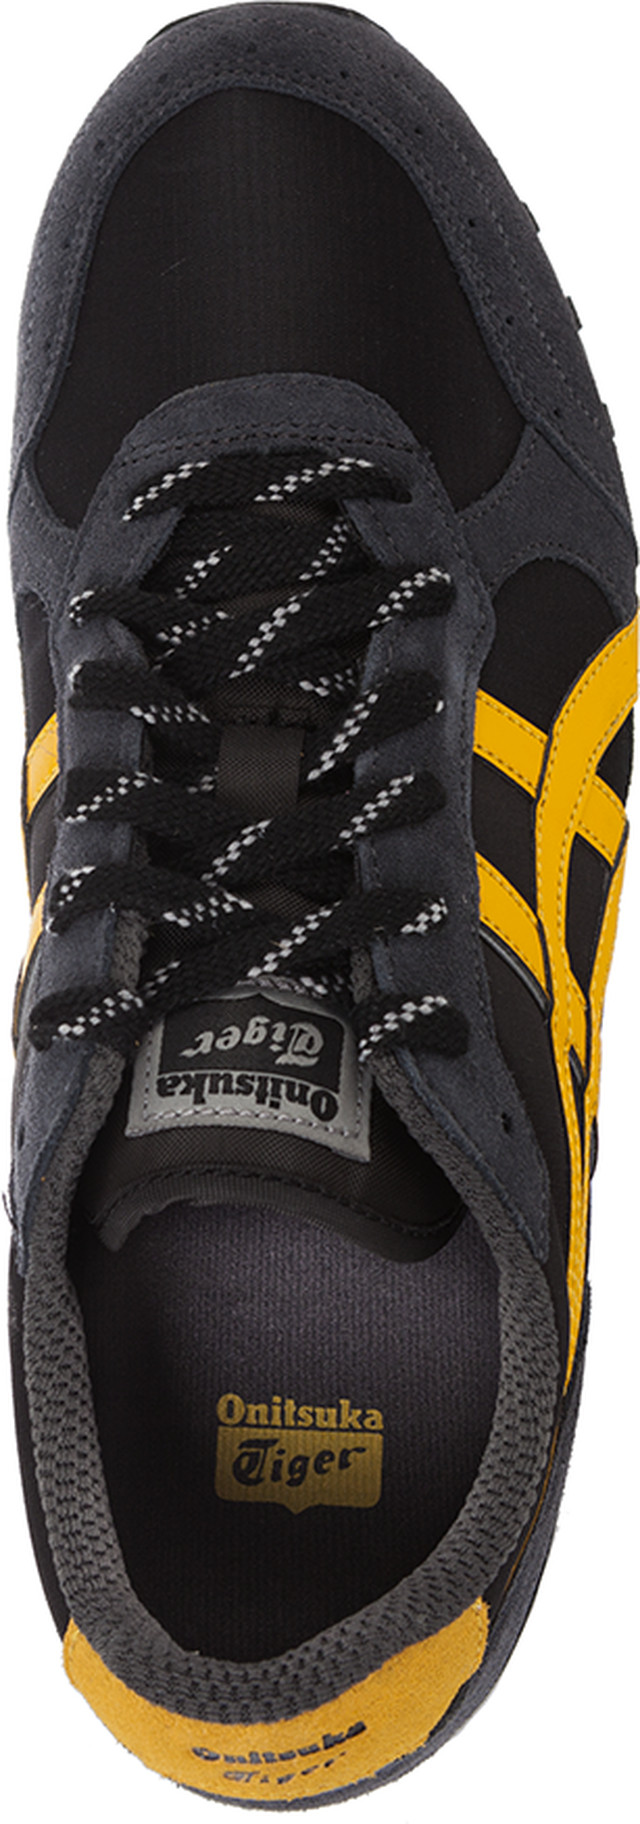 outlet store 5b53d 1c5a3 Buty Onitsuka Tiger Colorado Eighty-Five 9059 - eastend.pl